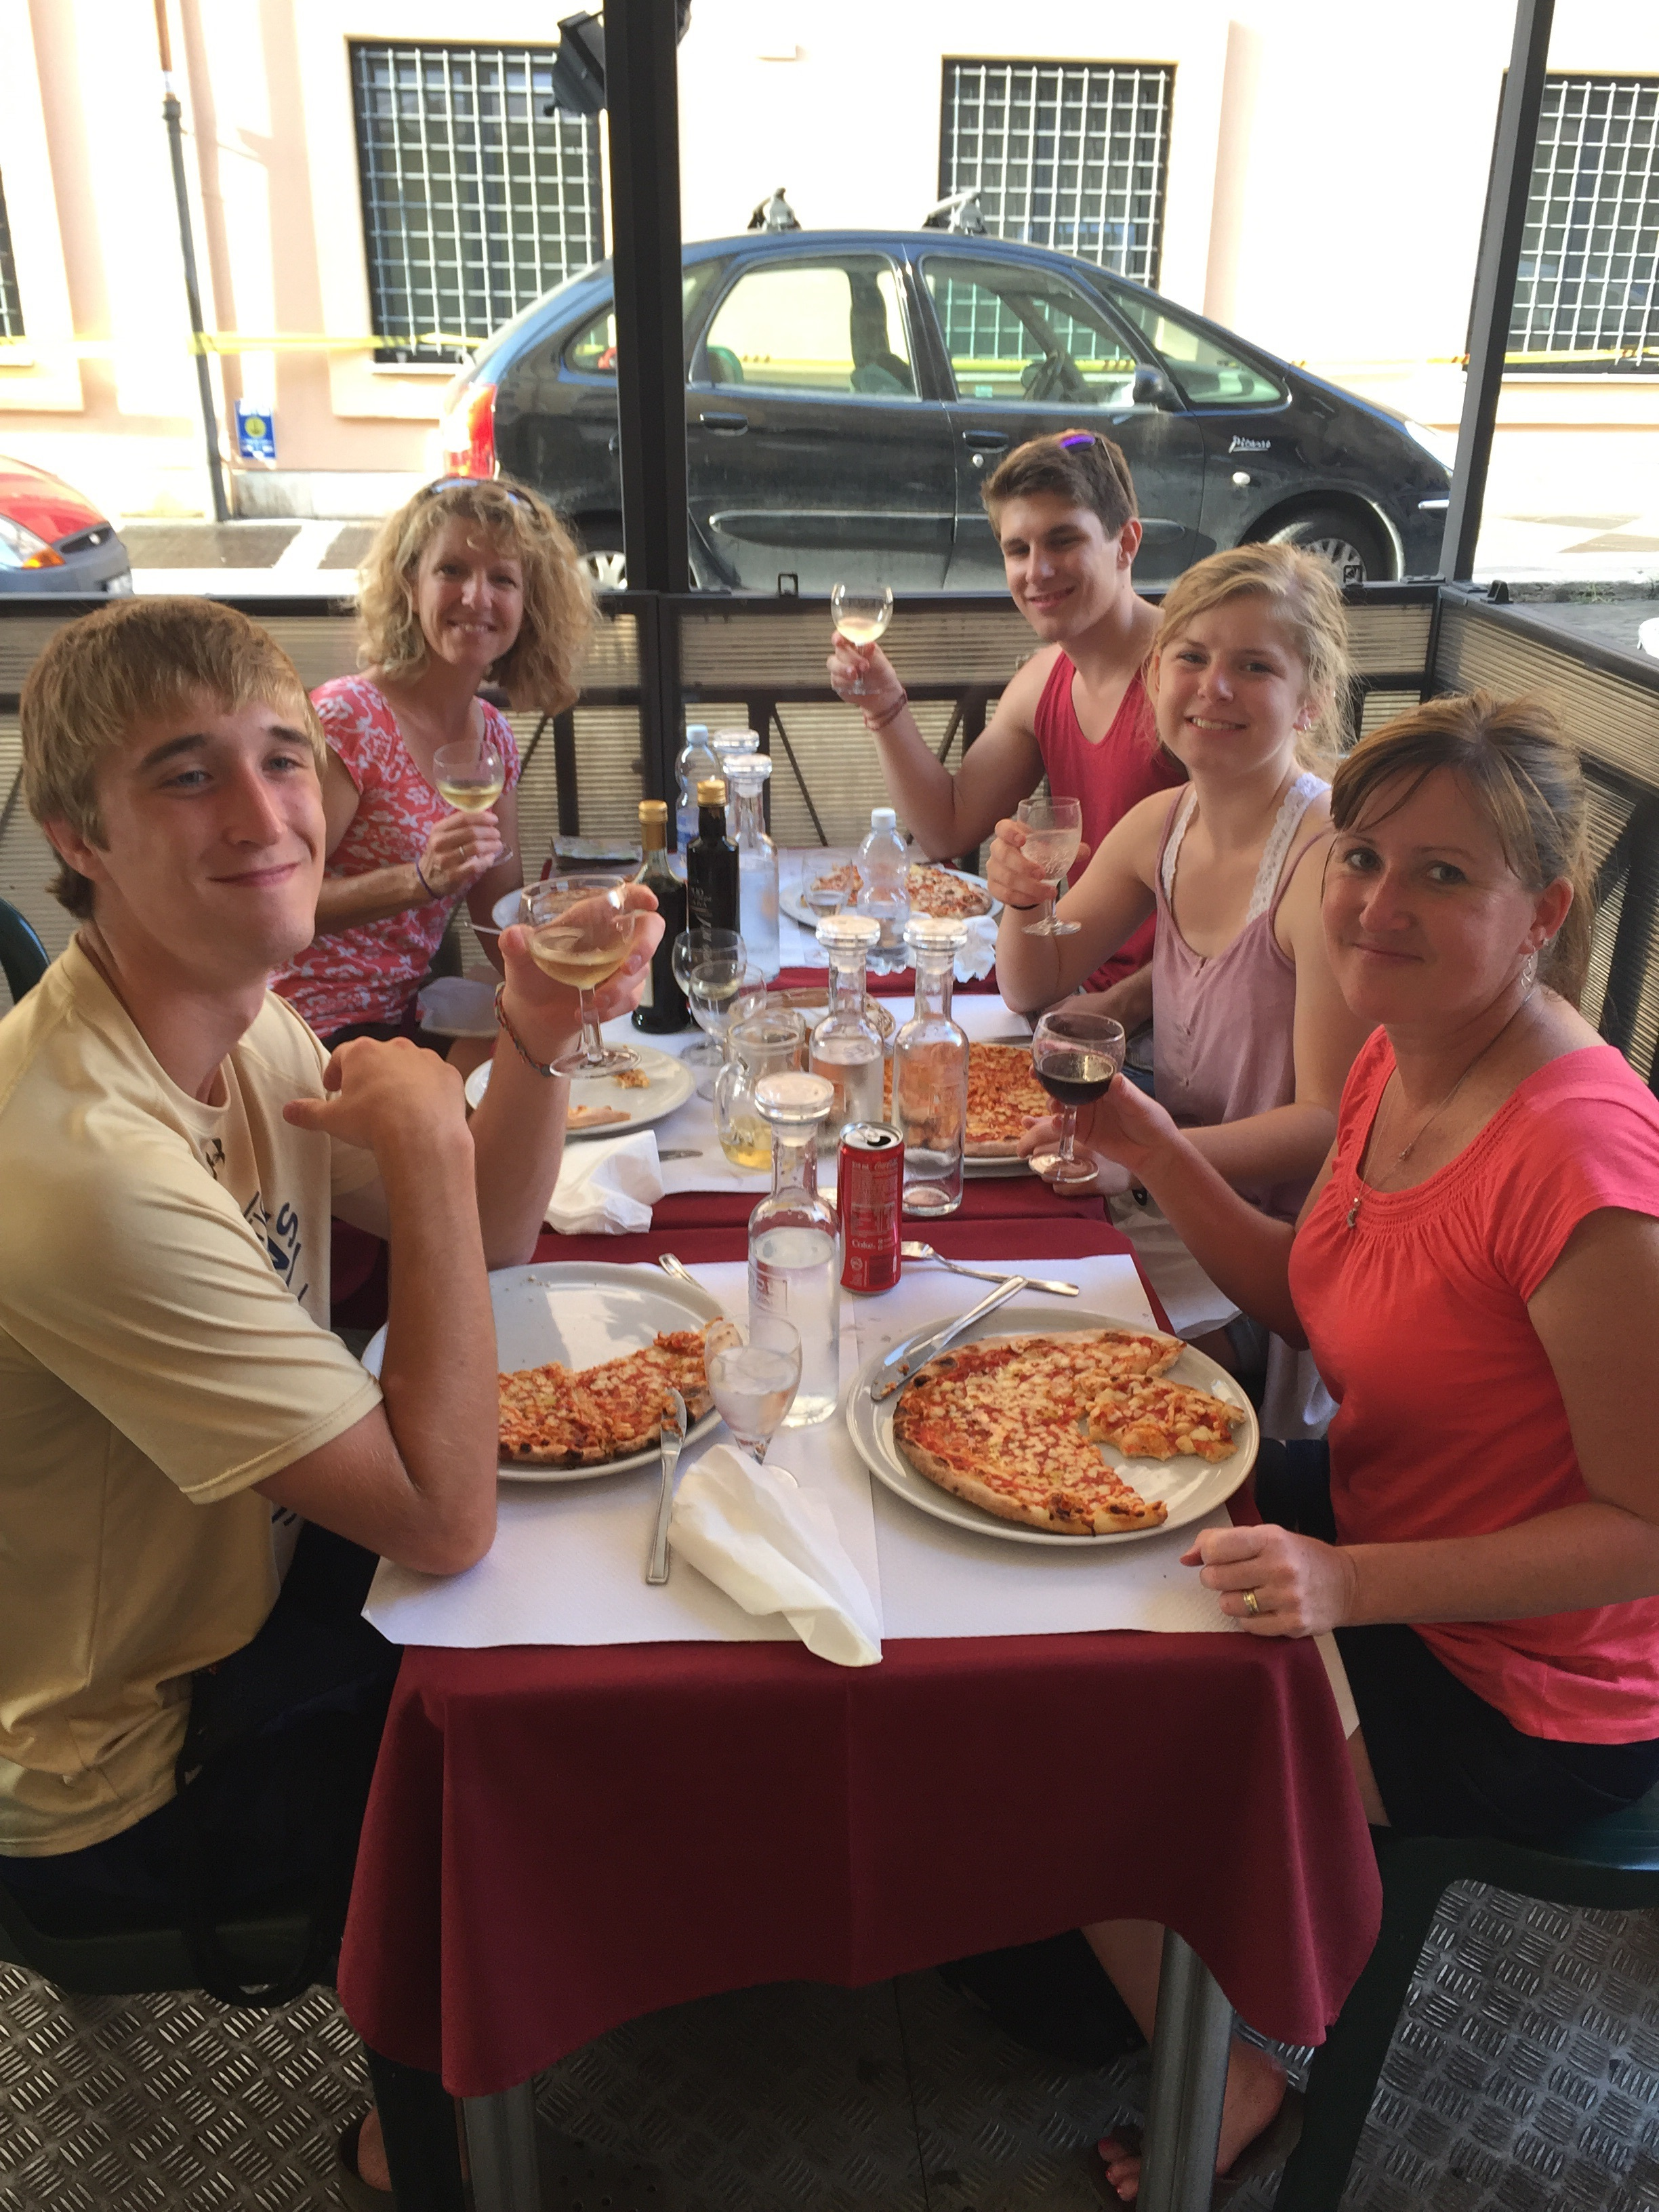 Pizza and wine in our first Roman meal bu the Colosseo.